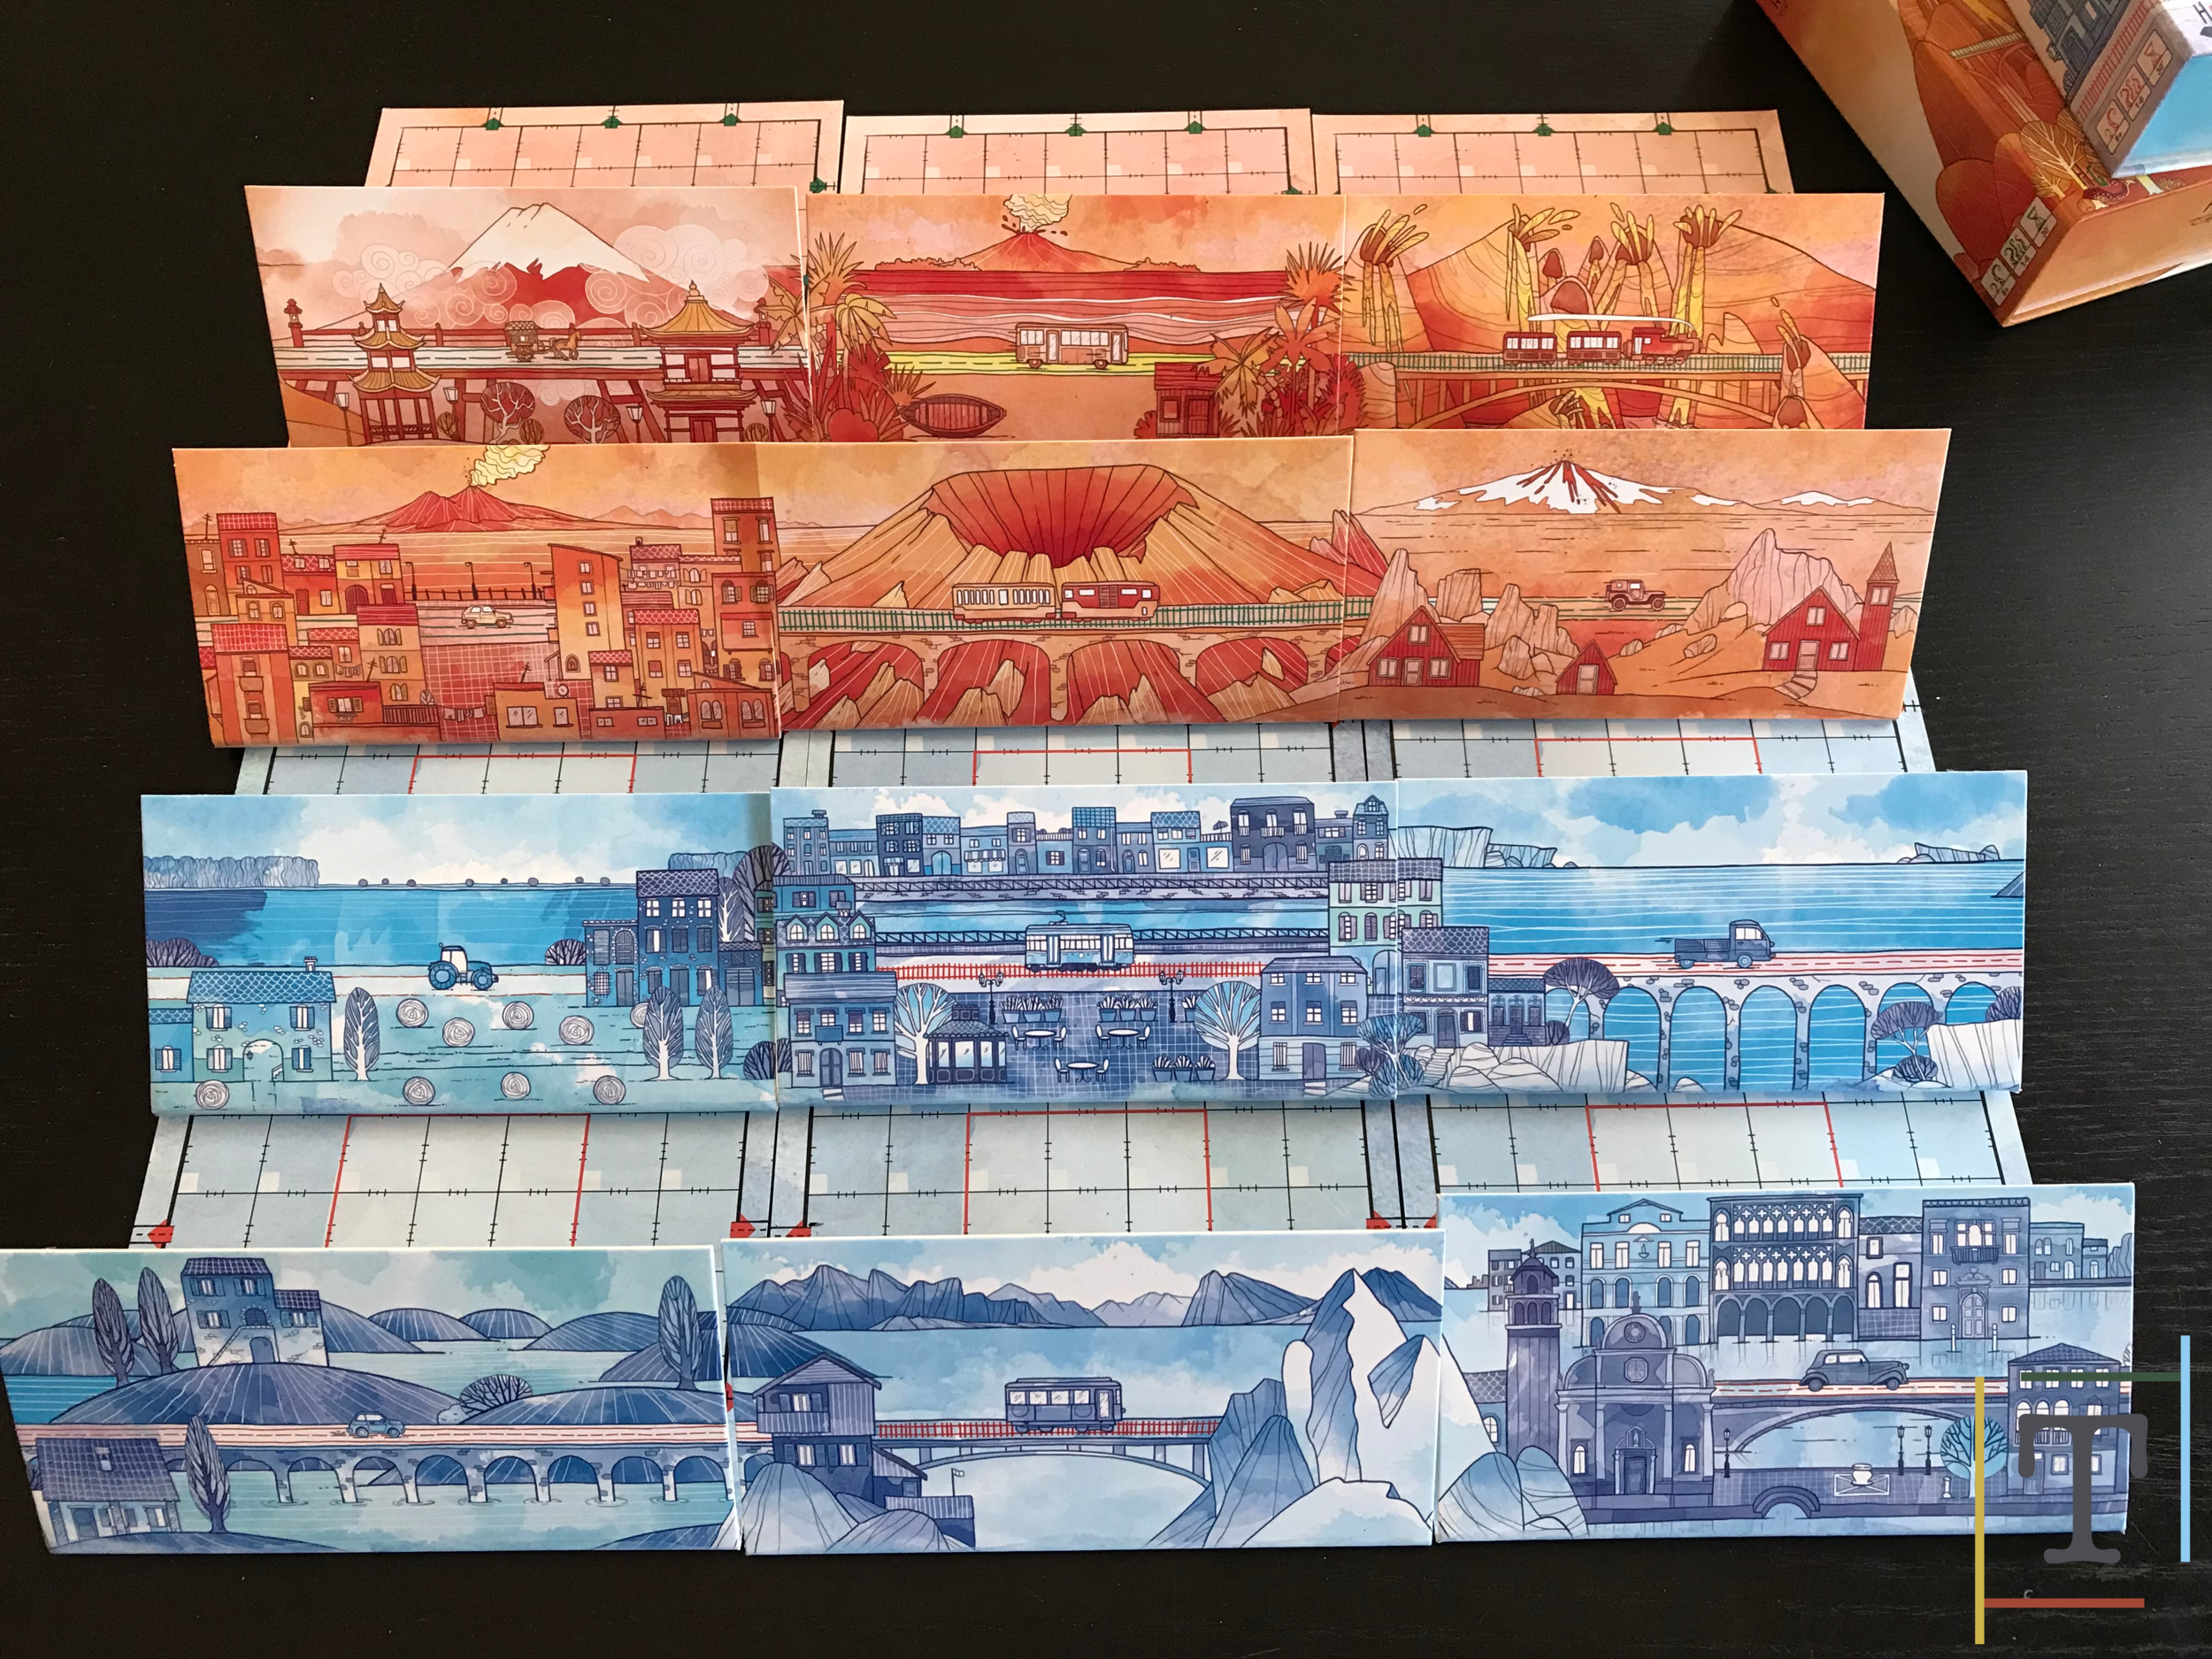 The backs of the player boards line up to make a beautiful panorama